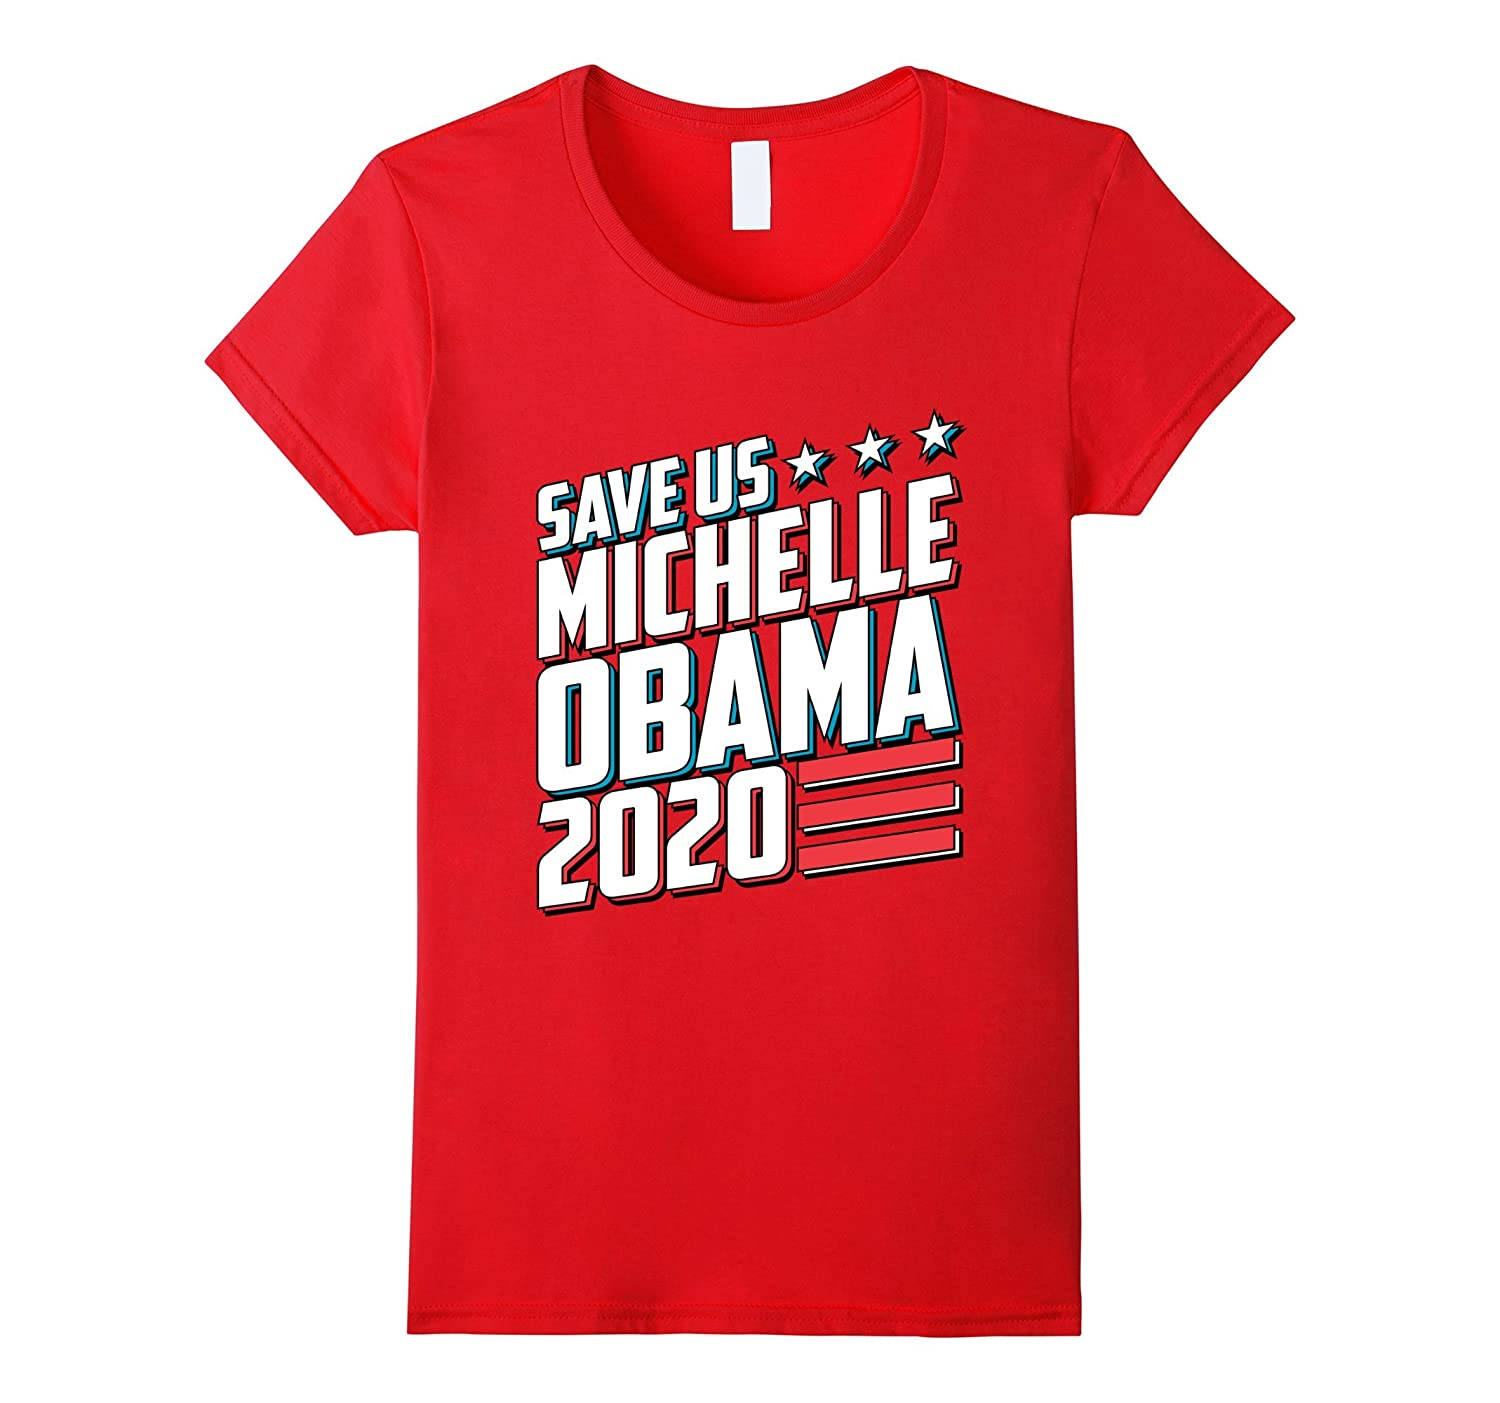 Michelle Obama 2020 Presidential Campaign Election TShirt